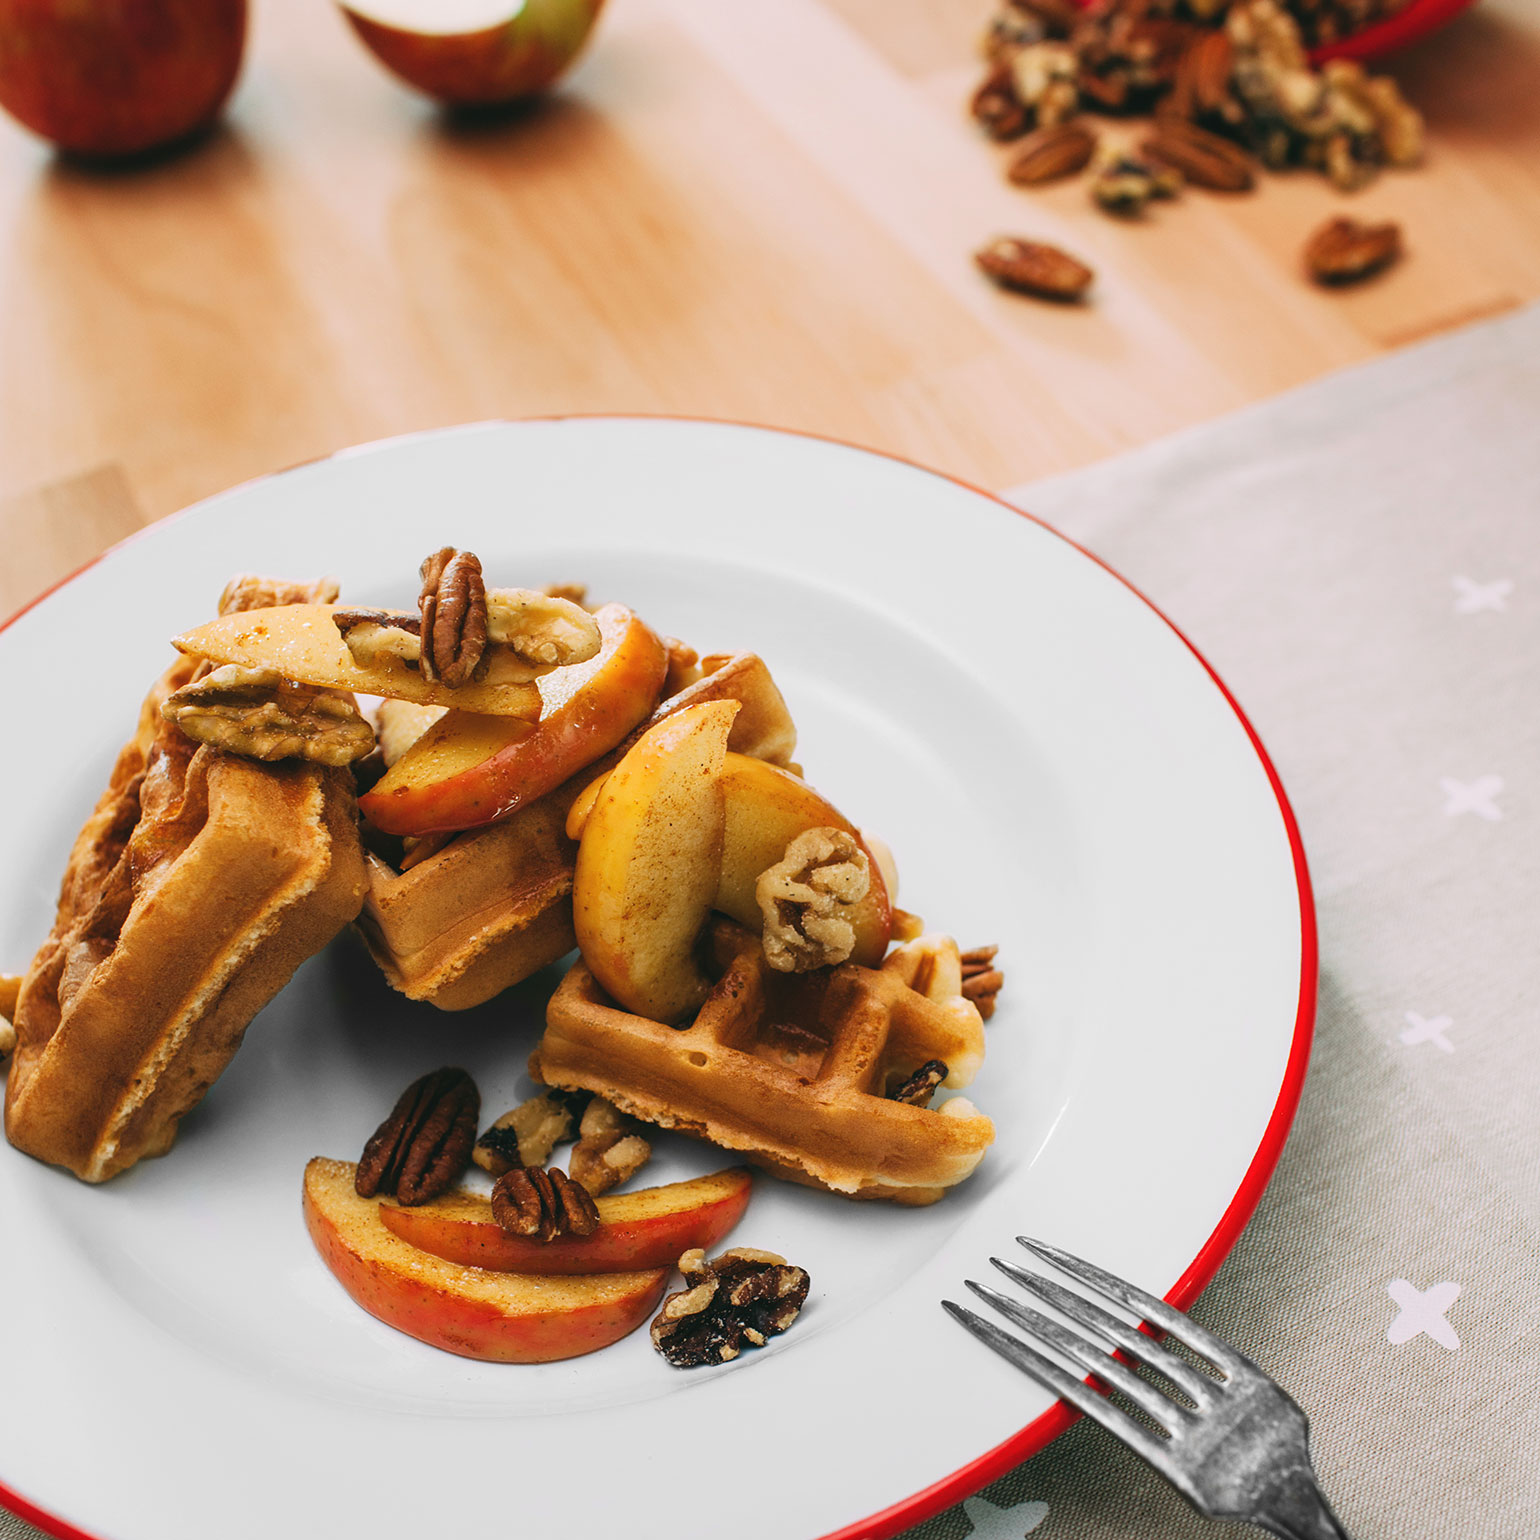 Caramelized Apples and Nuts Waffles